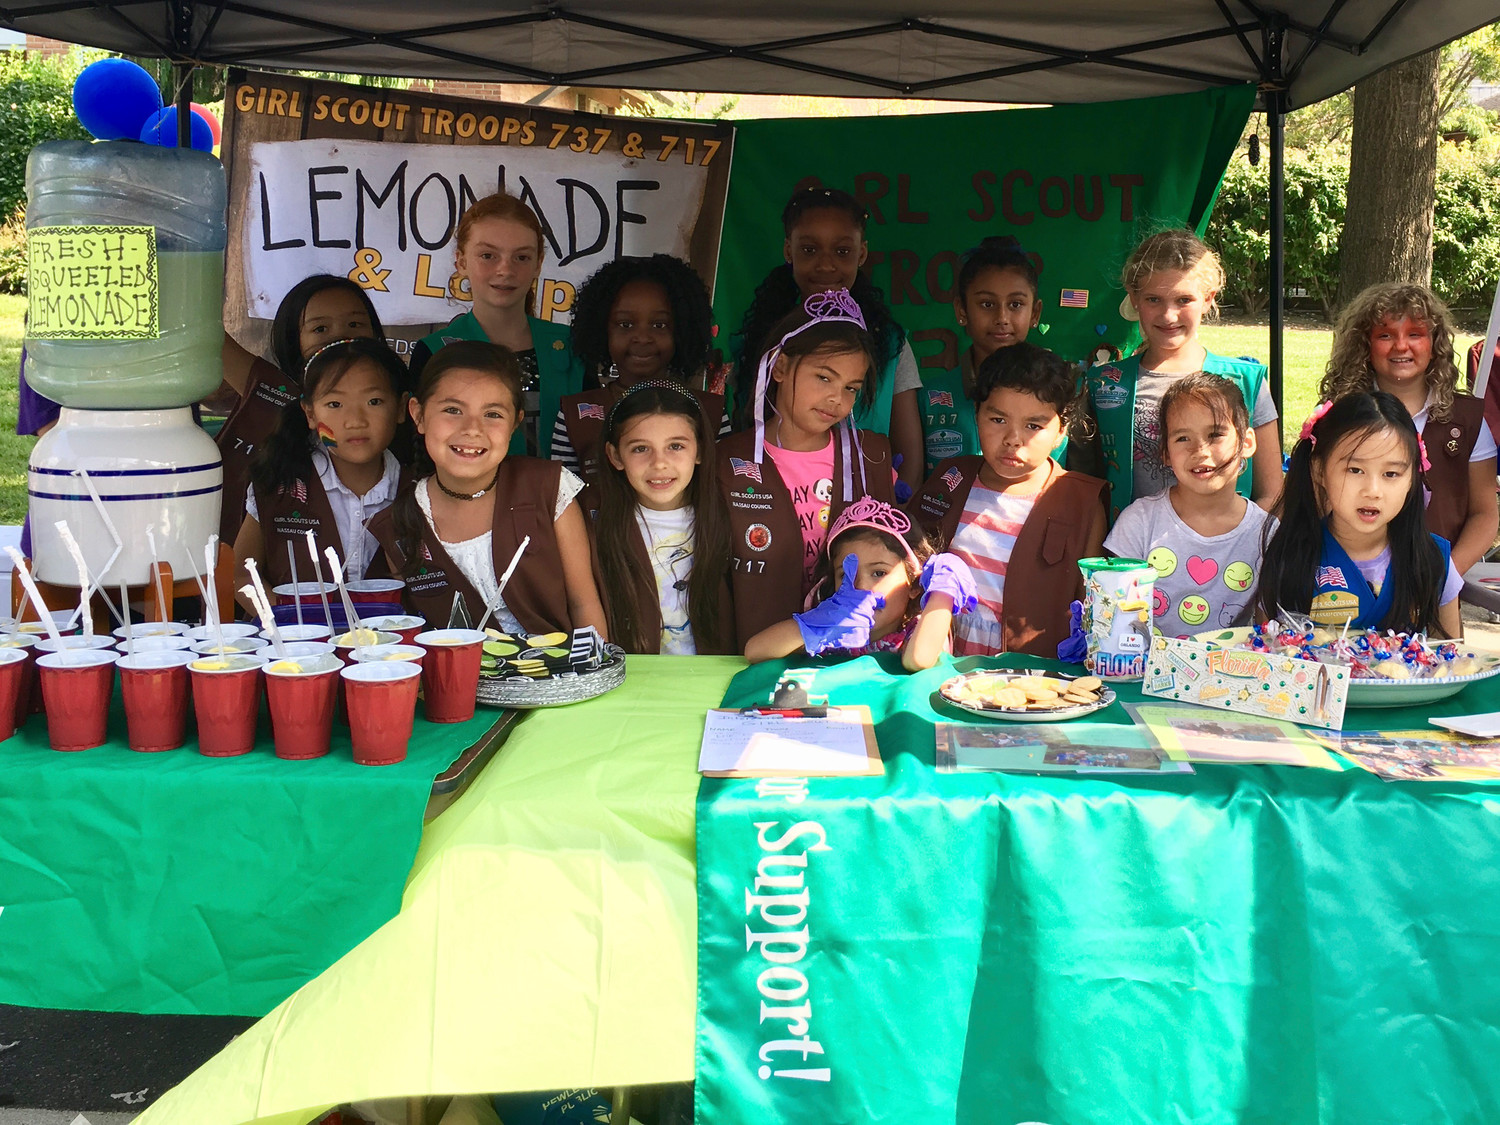 More than $700 was raised by Girl Scout troops 717 and 737 as they sold homemade chocolate lollipops and homemade fresh-squeezed lemonade at Arts Below Sunrise last month. From left in front were Mischa Zhang, Kaelyn Schaefer, Isabella McKenna, Sophia Balmores, Anna Balmores, Valentina Urena, Cecilia DiFrancisco and Julia Lu. From left in back were Allesandra Estioko Heather McHale, Aaliyah Ojikutu, Almeerah Ojikutu, Anjali Patel, Stella Fratti and Johanna Zack.